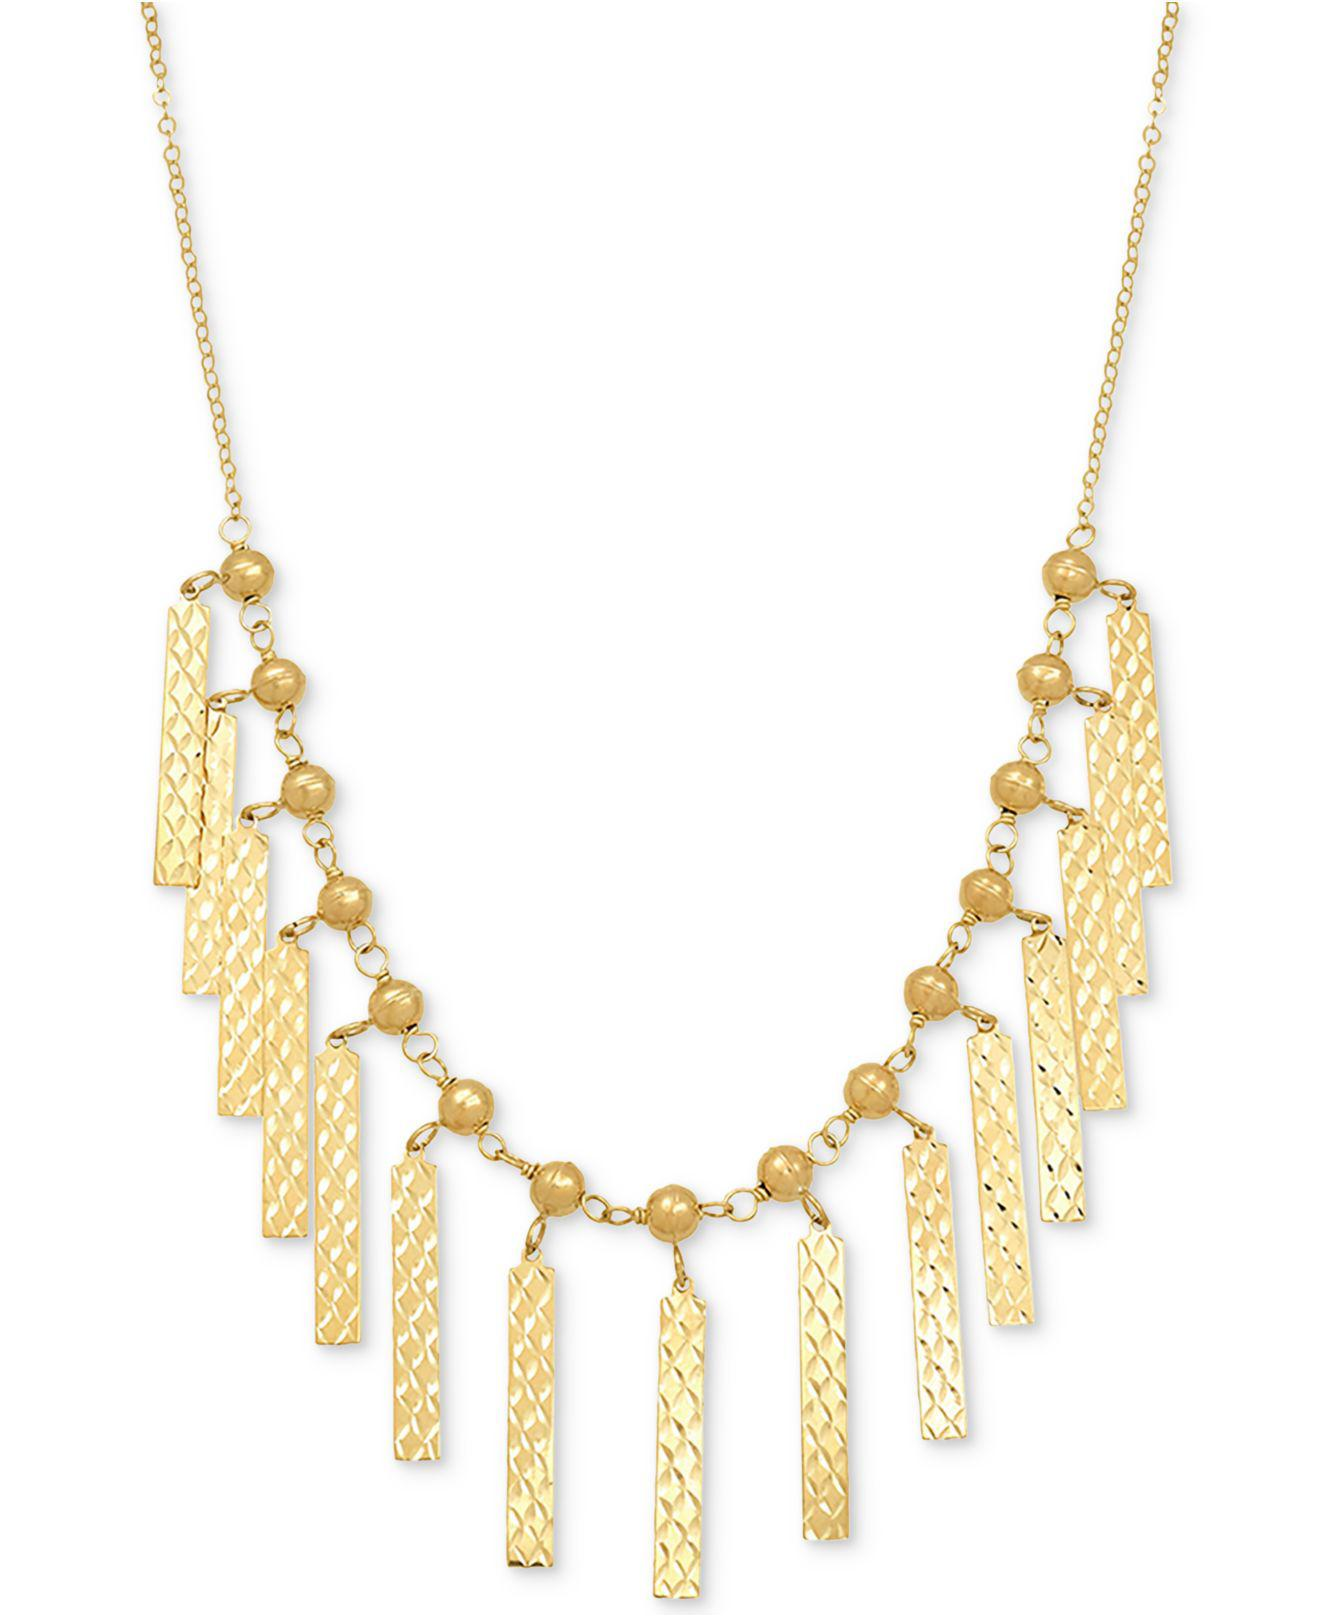 6e401a9bb5a470 Lyst - Macy's Cleopatra Collar Necklace In 10k Gold in Metallic